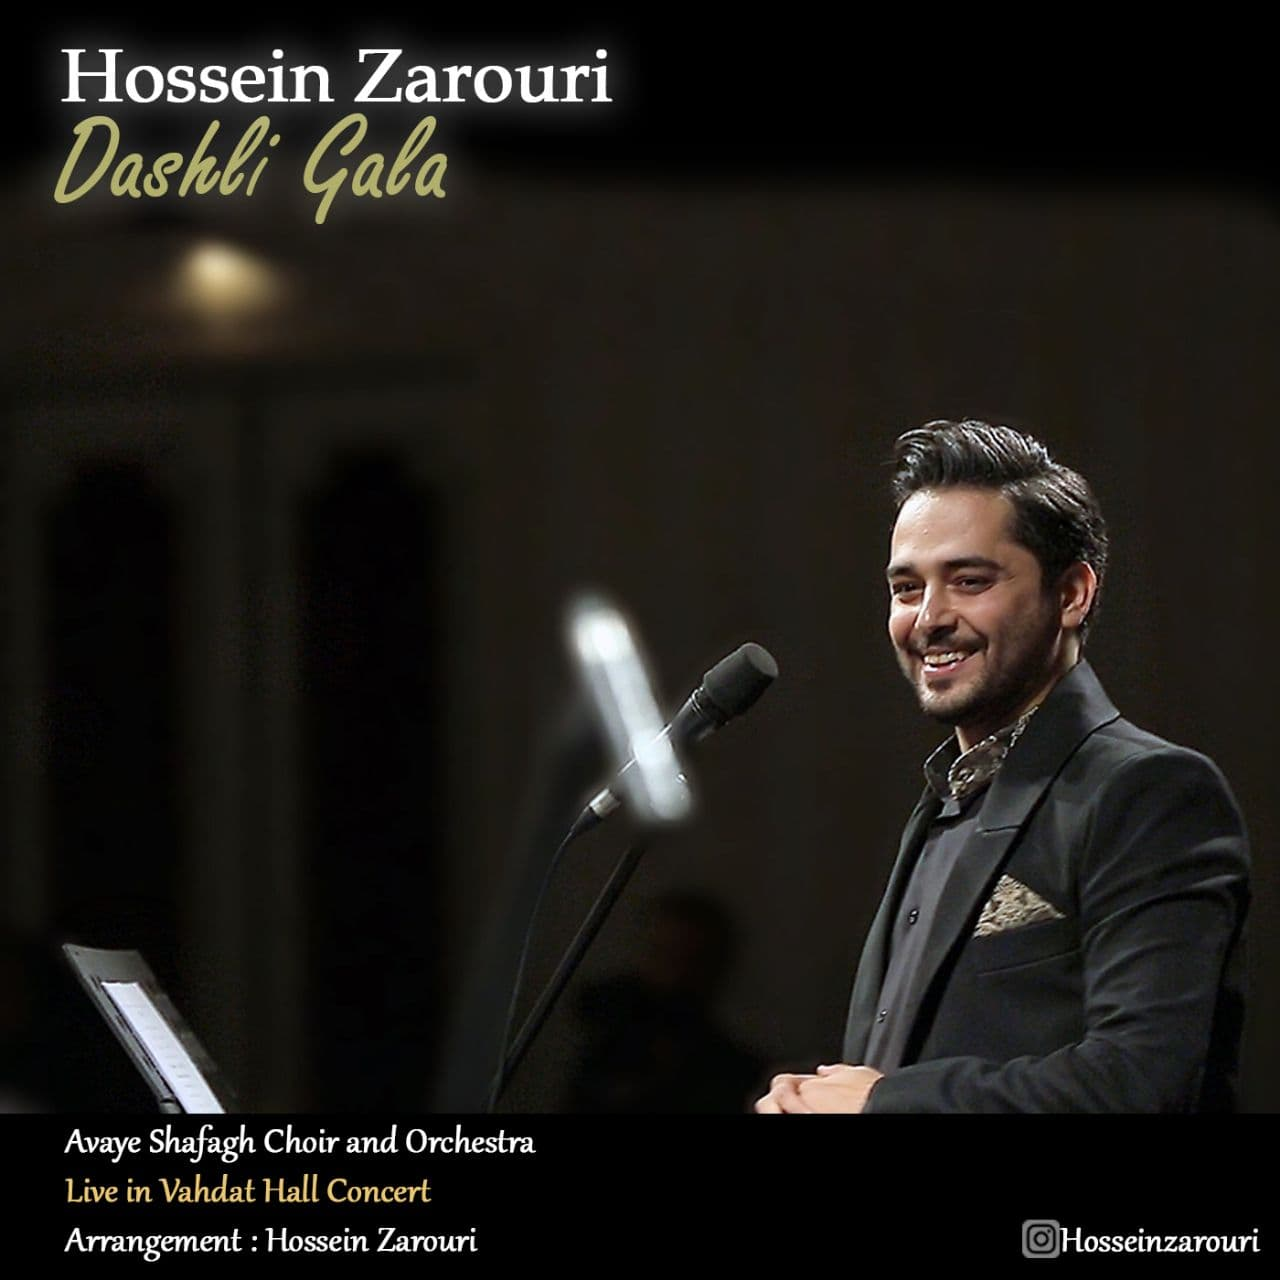 https://s17.picofile.com/file/8428797076/05Hossein_Zarouri_Dashli_Gala.jpg